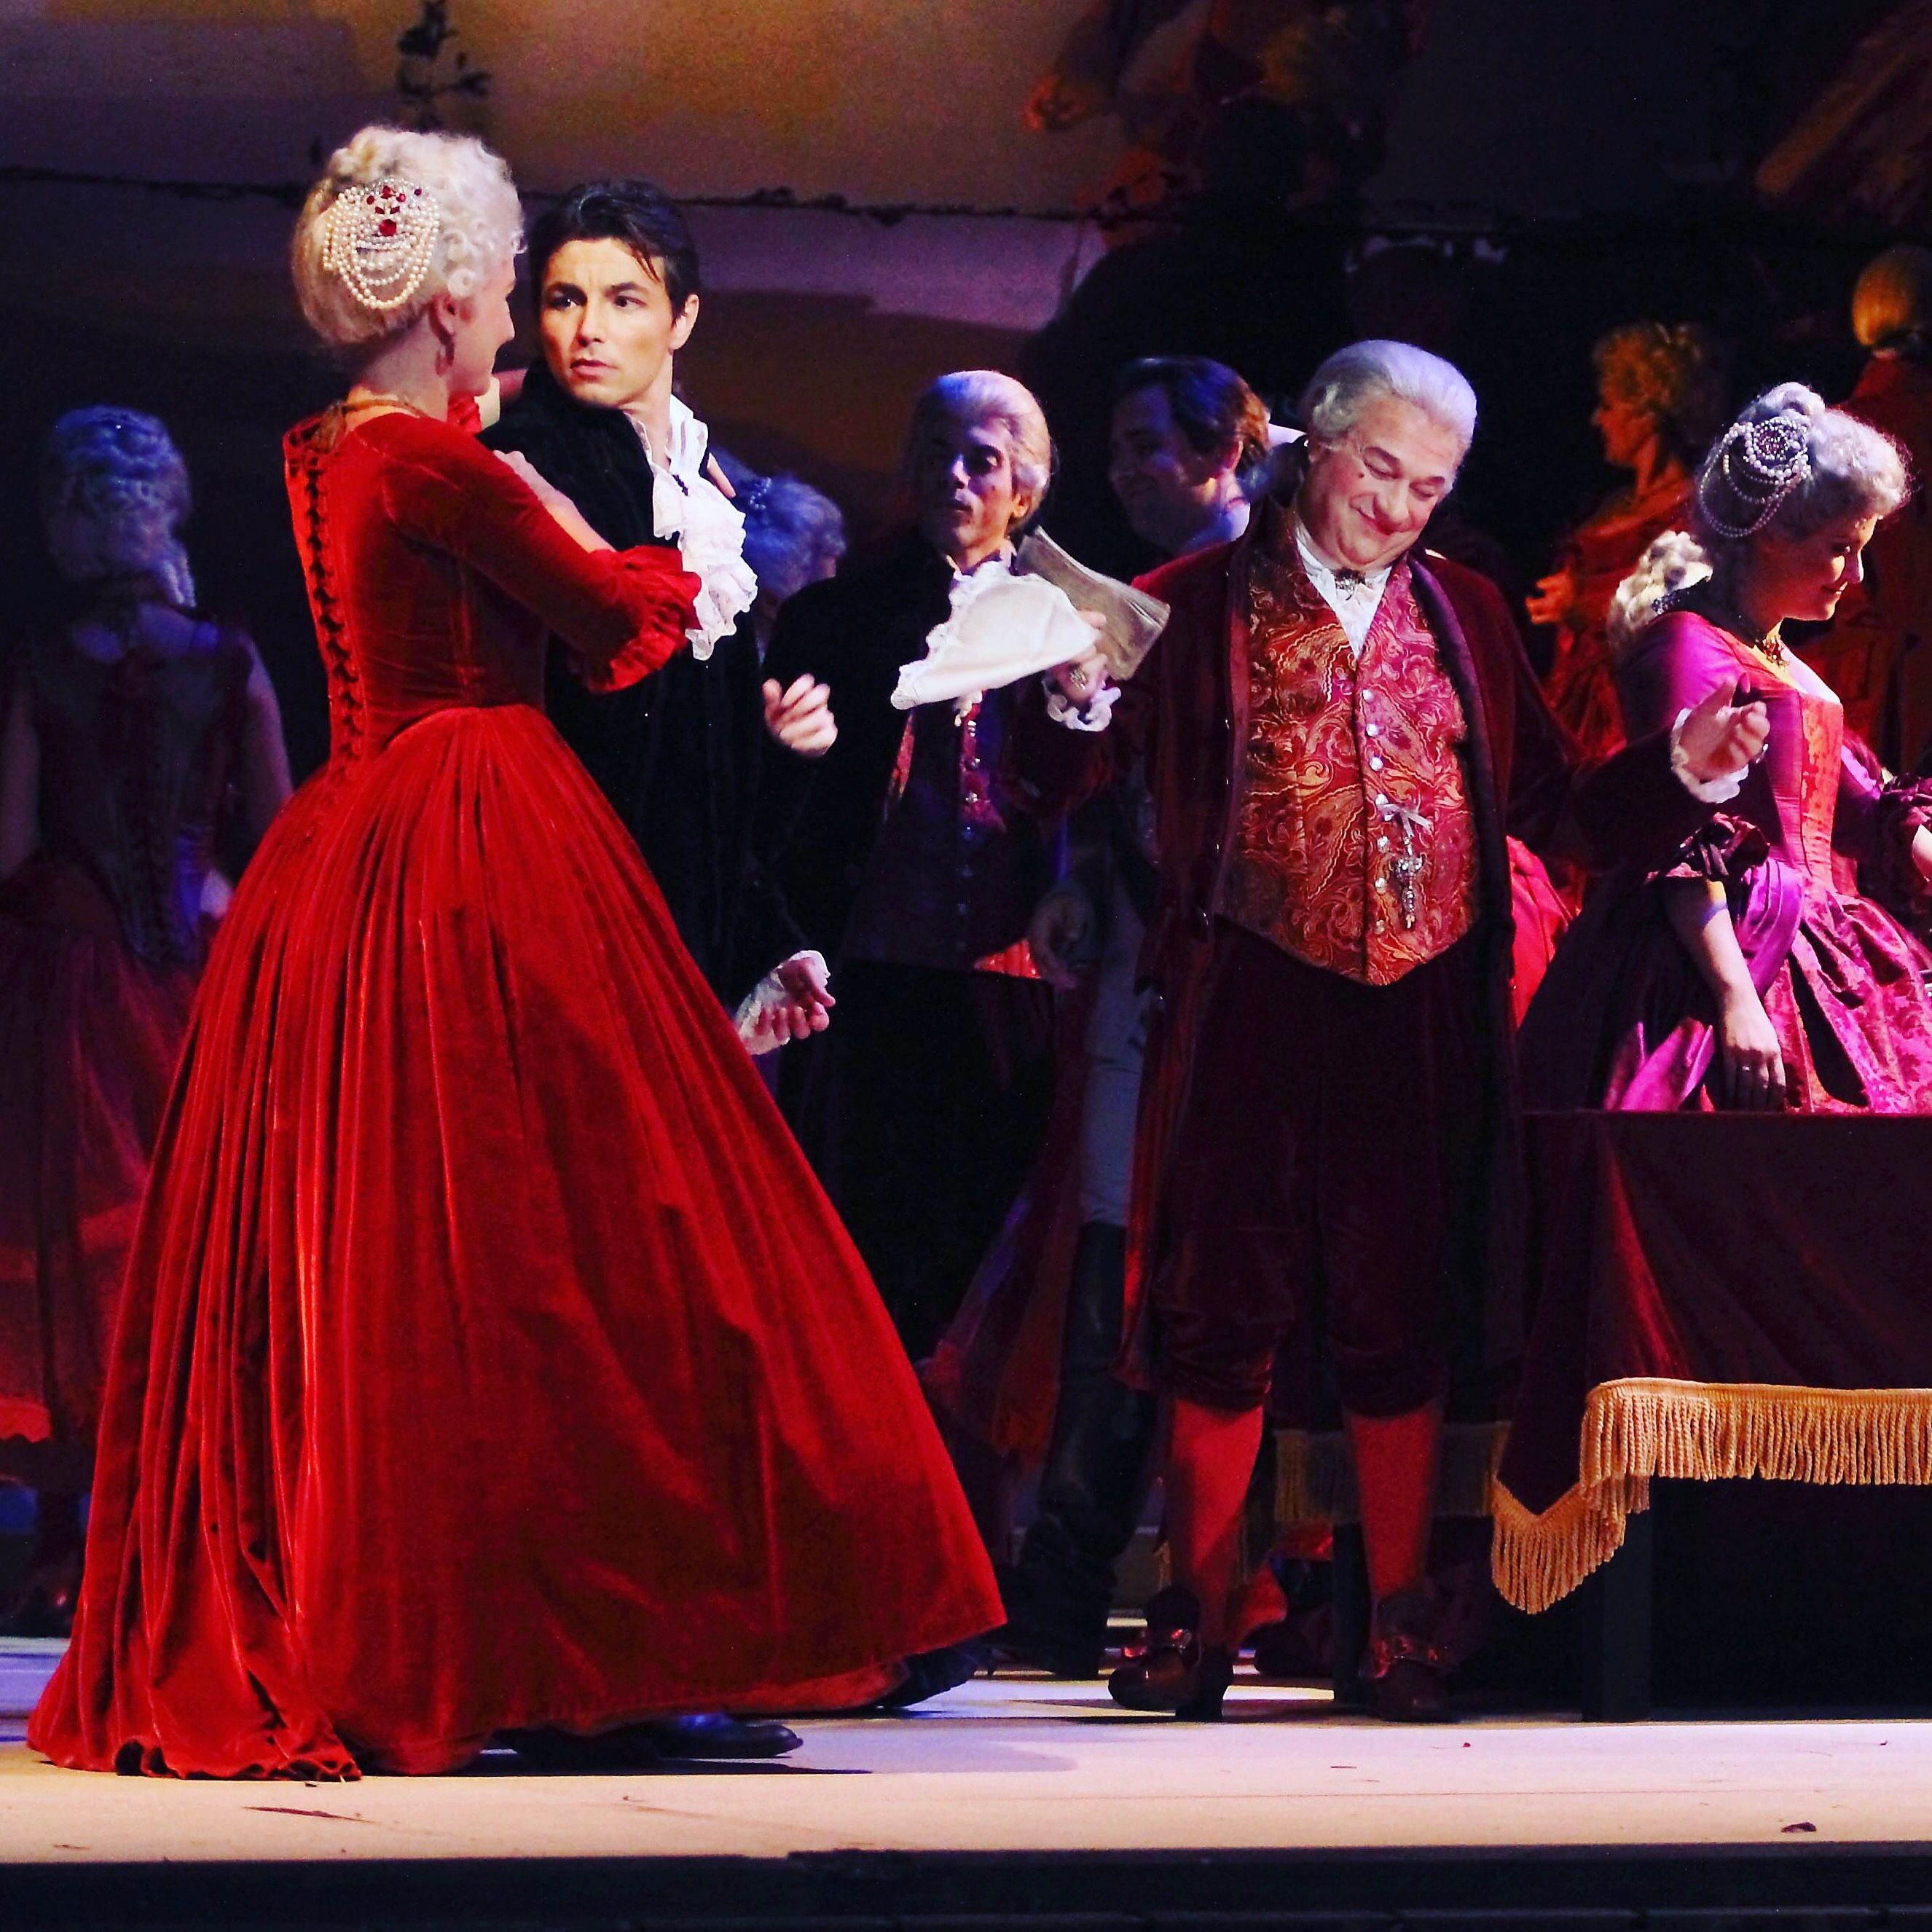 Kim Jong Il staged the opera Eugene Onegin 08.06.2009 97